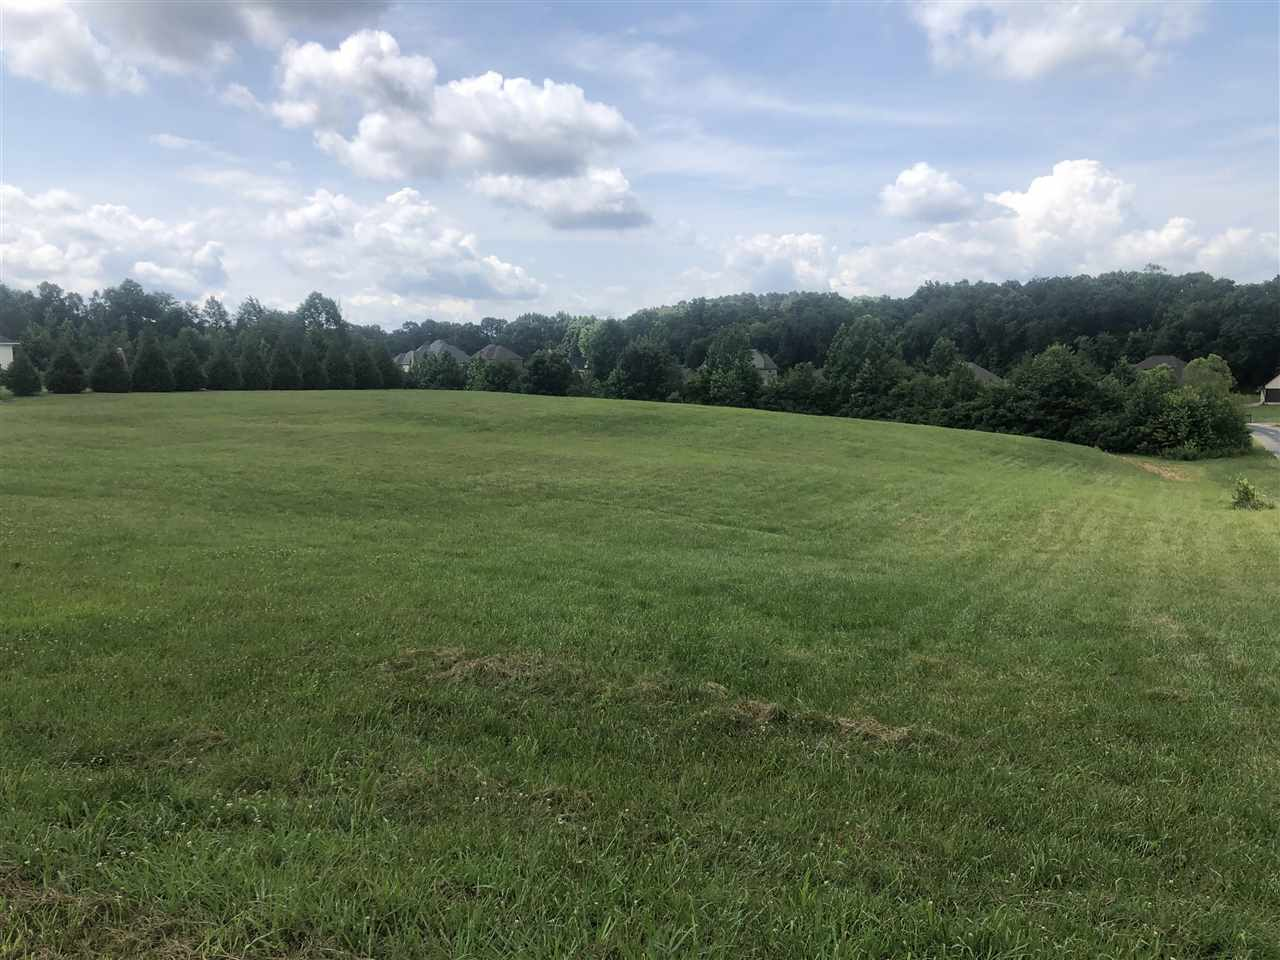 Lot 6 Ridgewood Drive,Henderson,Tennessee 38340,Lots/land,Lot 6 Ridgewood Drive,163241